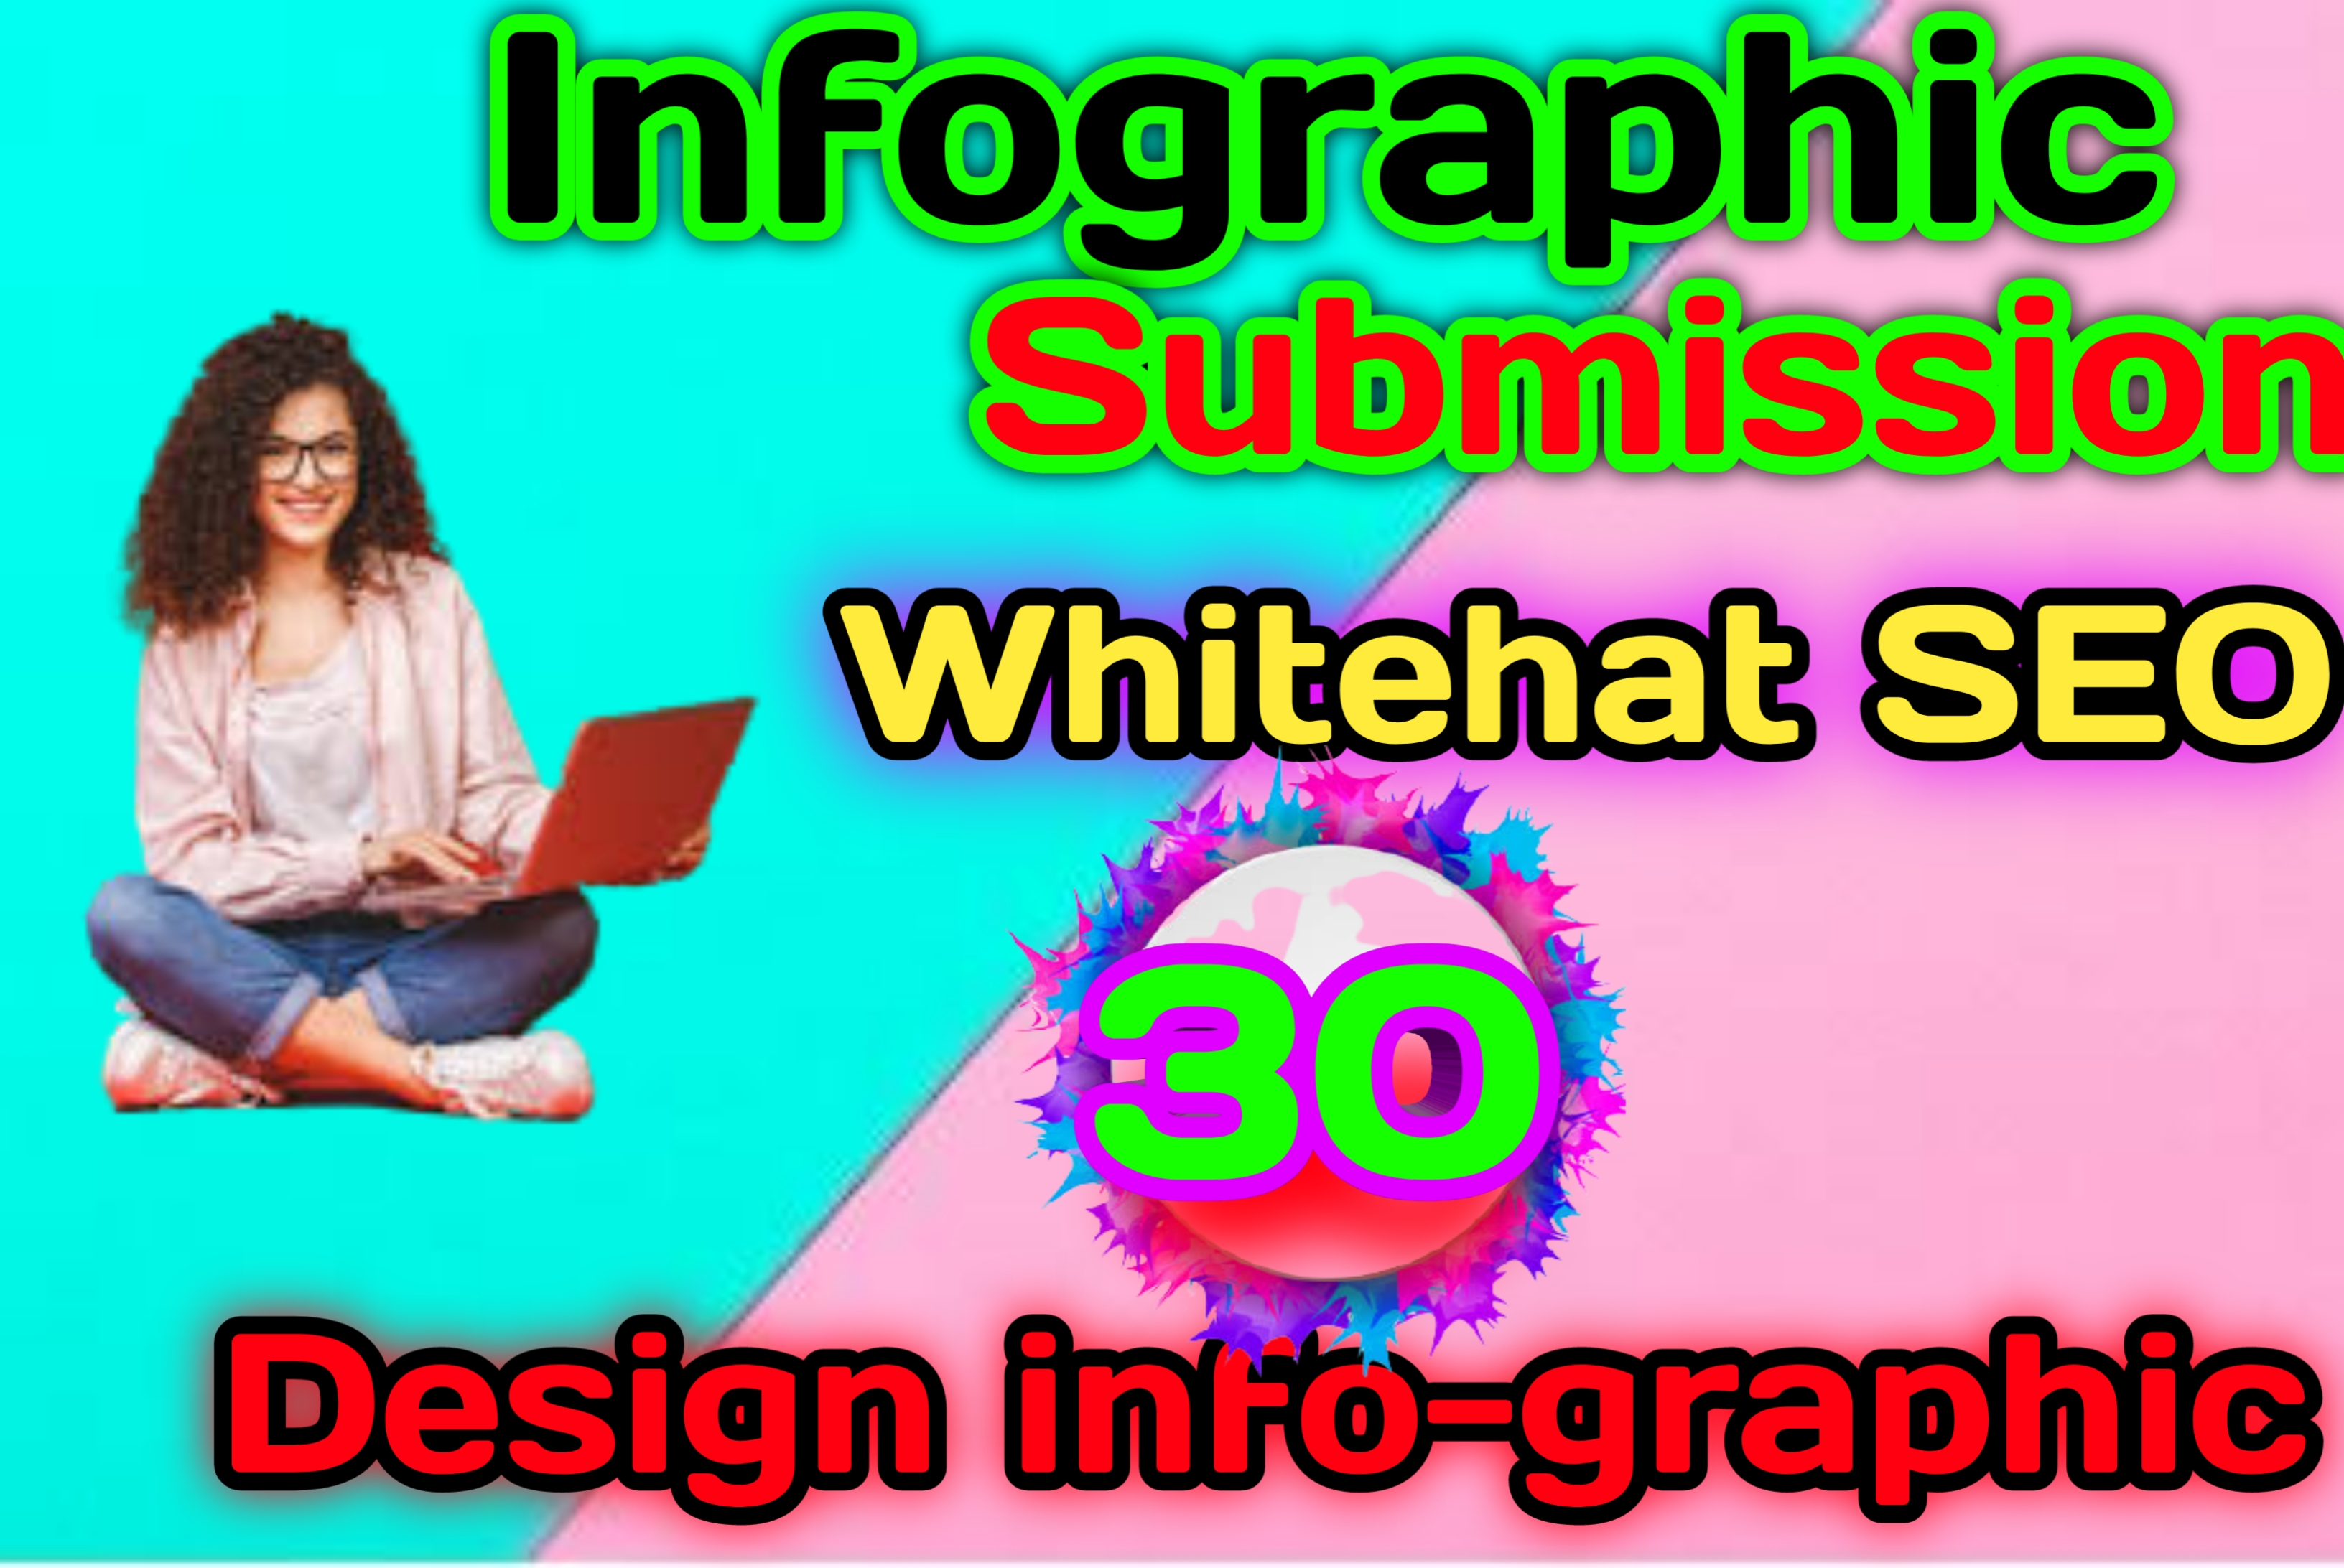 I do 30 Design infographic and manually submit on High DA/image submission sites